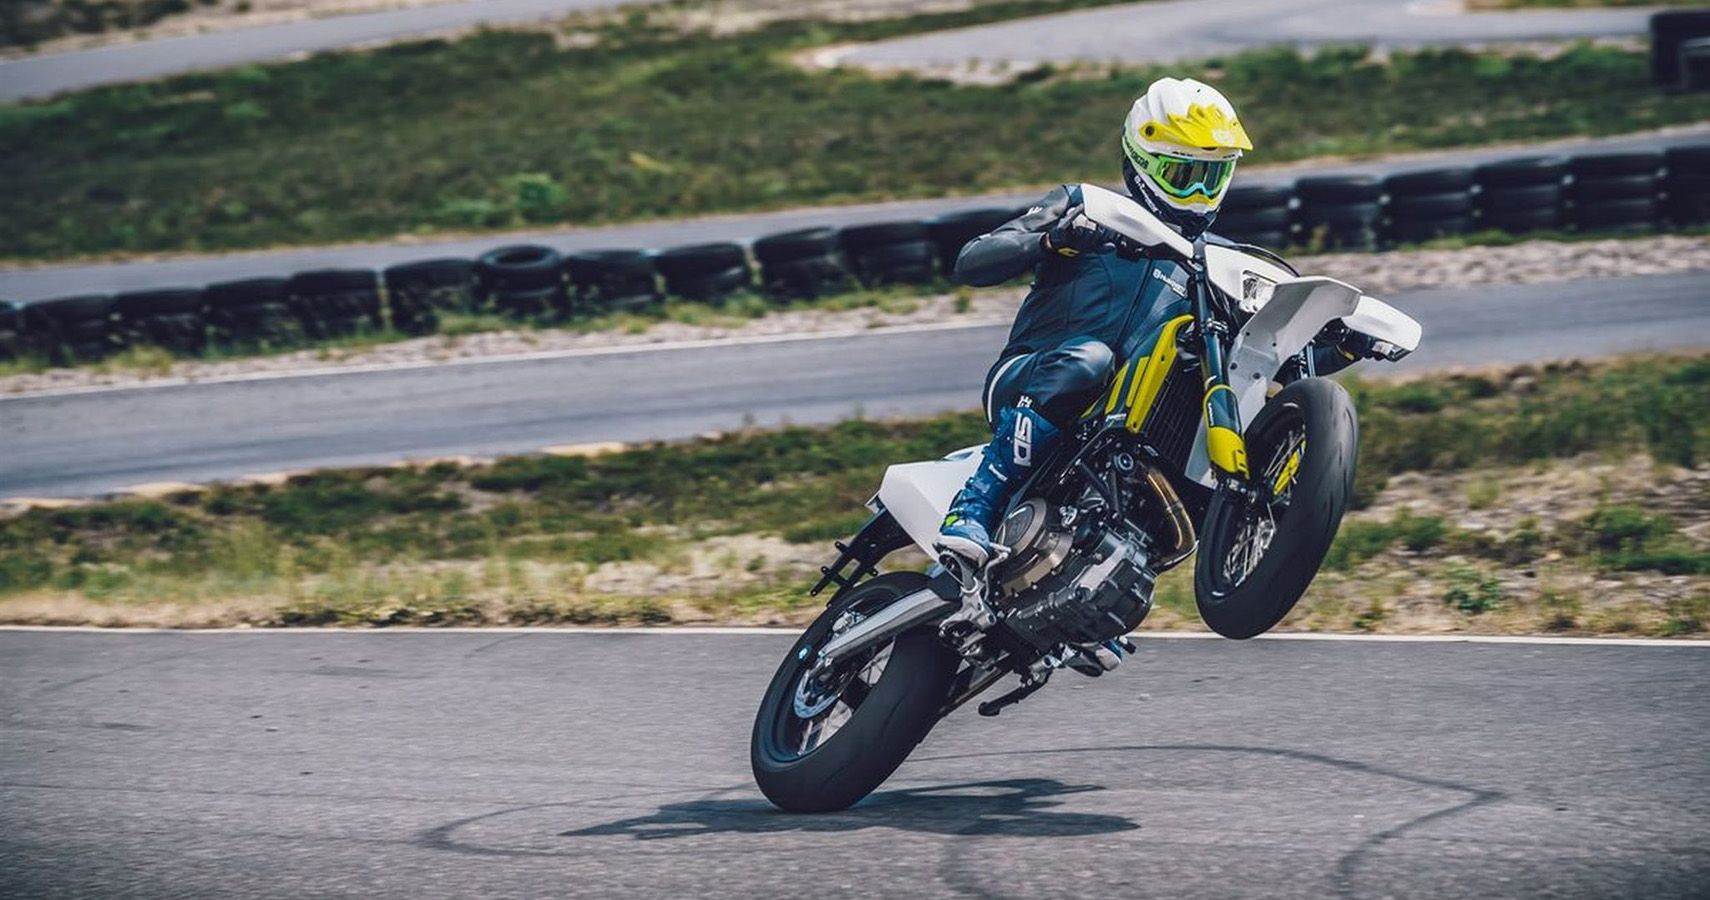 9 Reasons Why The Husqvarna 701 Is Awesome